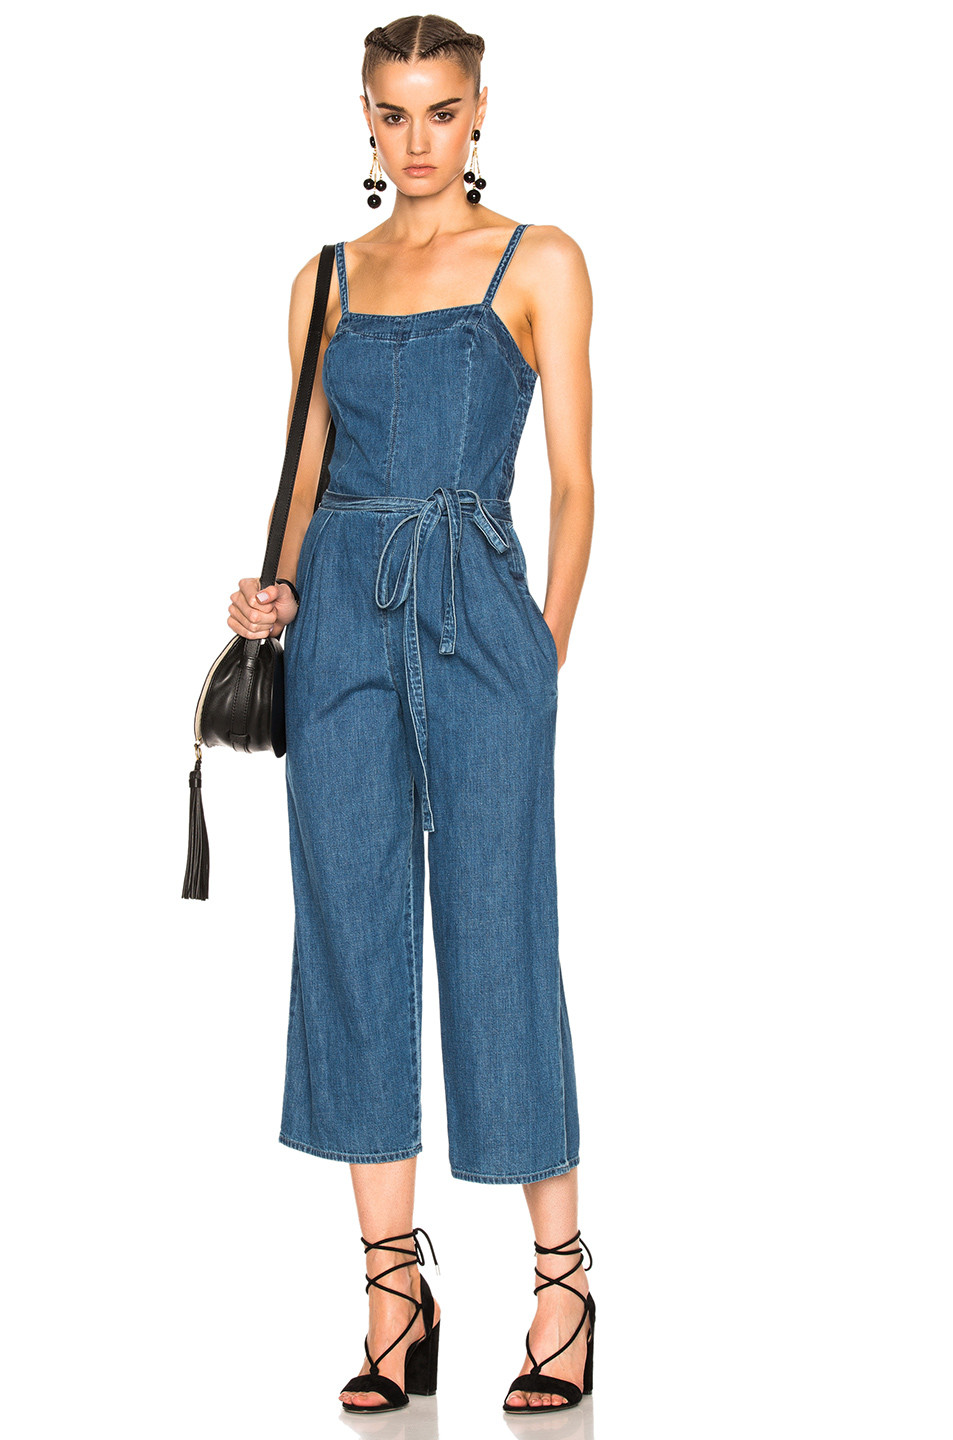 AG Adriano Goldschmied Giselle Jumpsuit $218